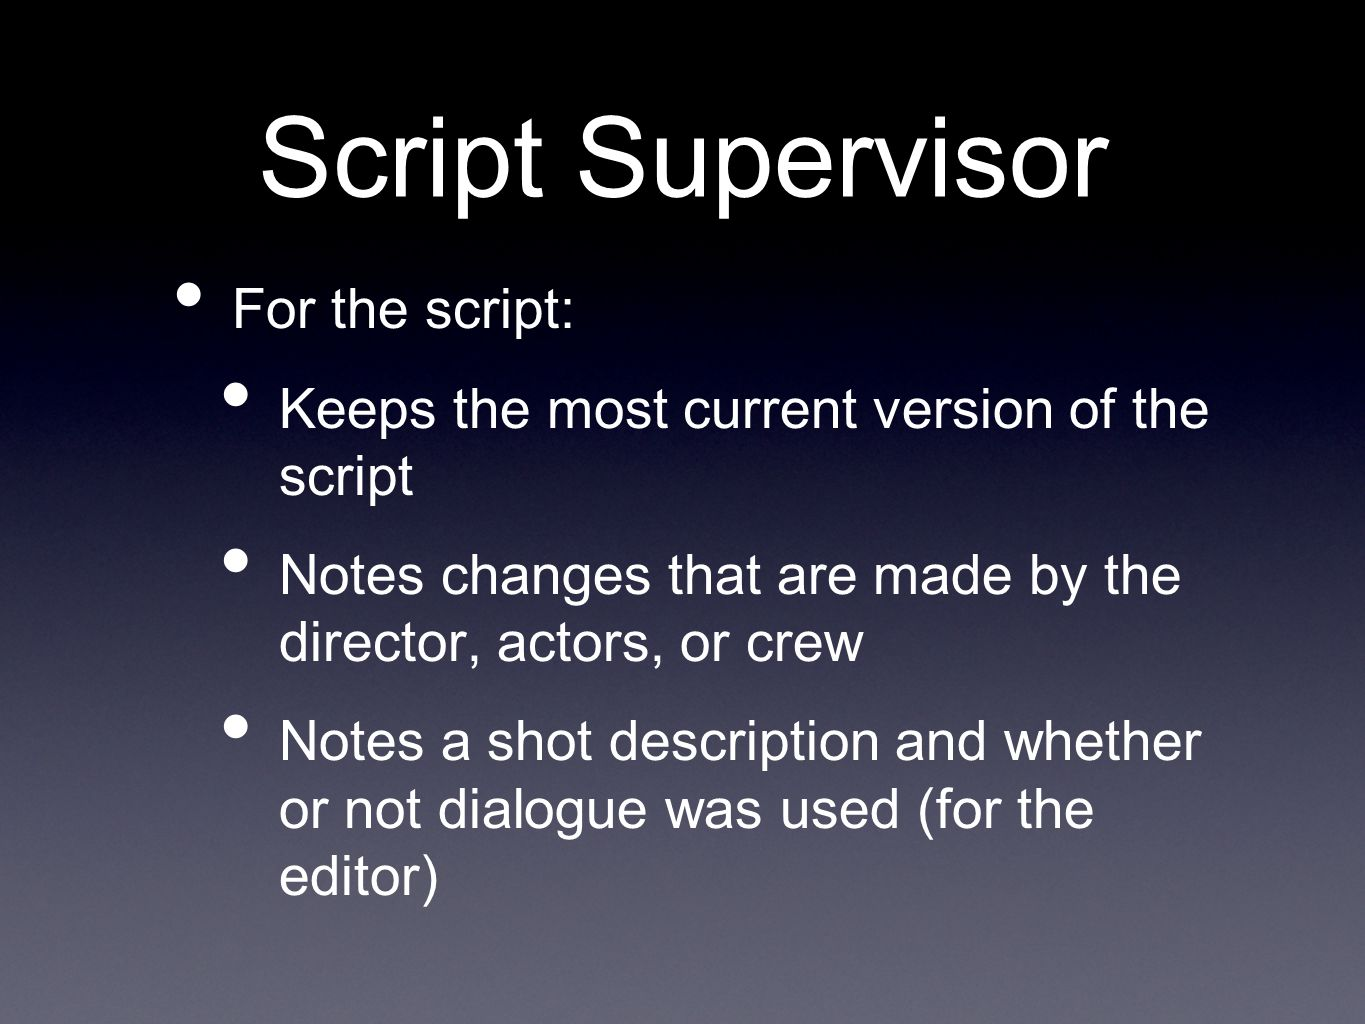 Script Supervisor For the Producer: Produces reports that log the actual shooting times, and when breaks started and stopped.